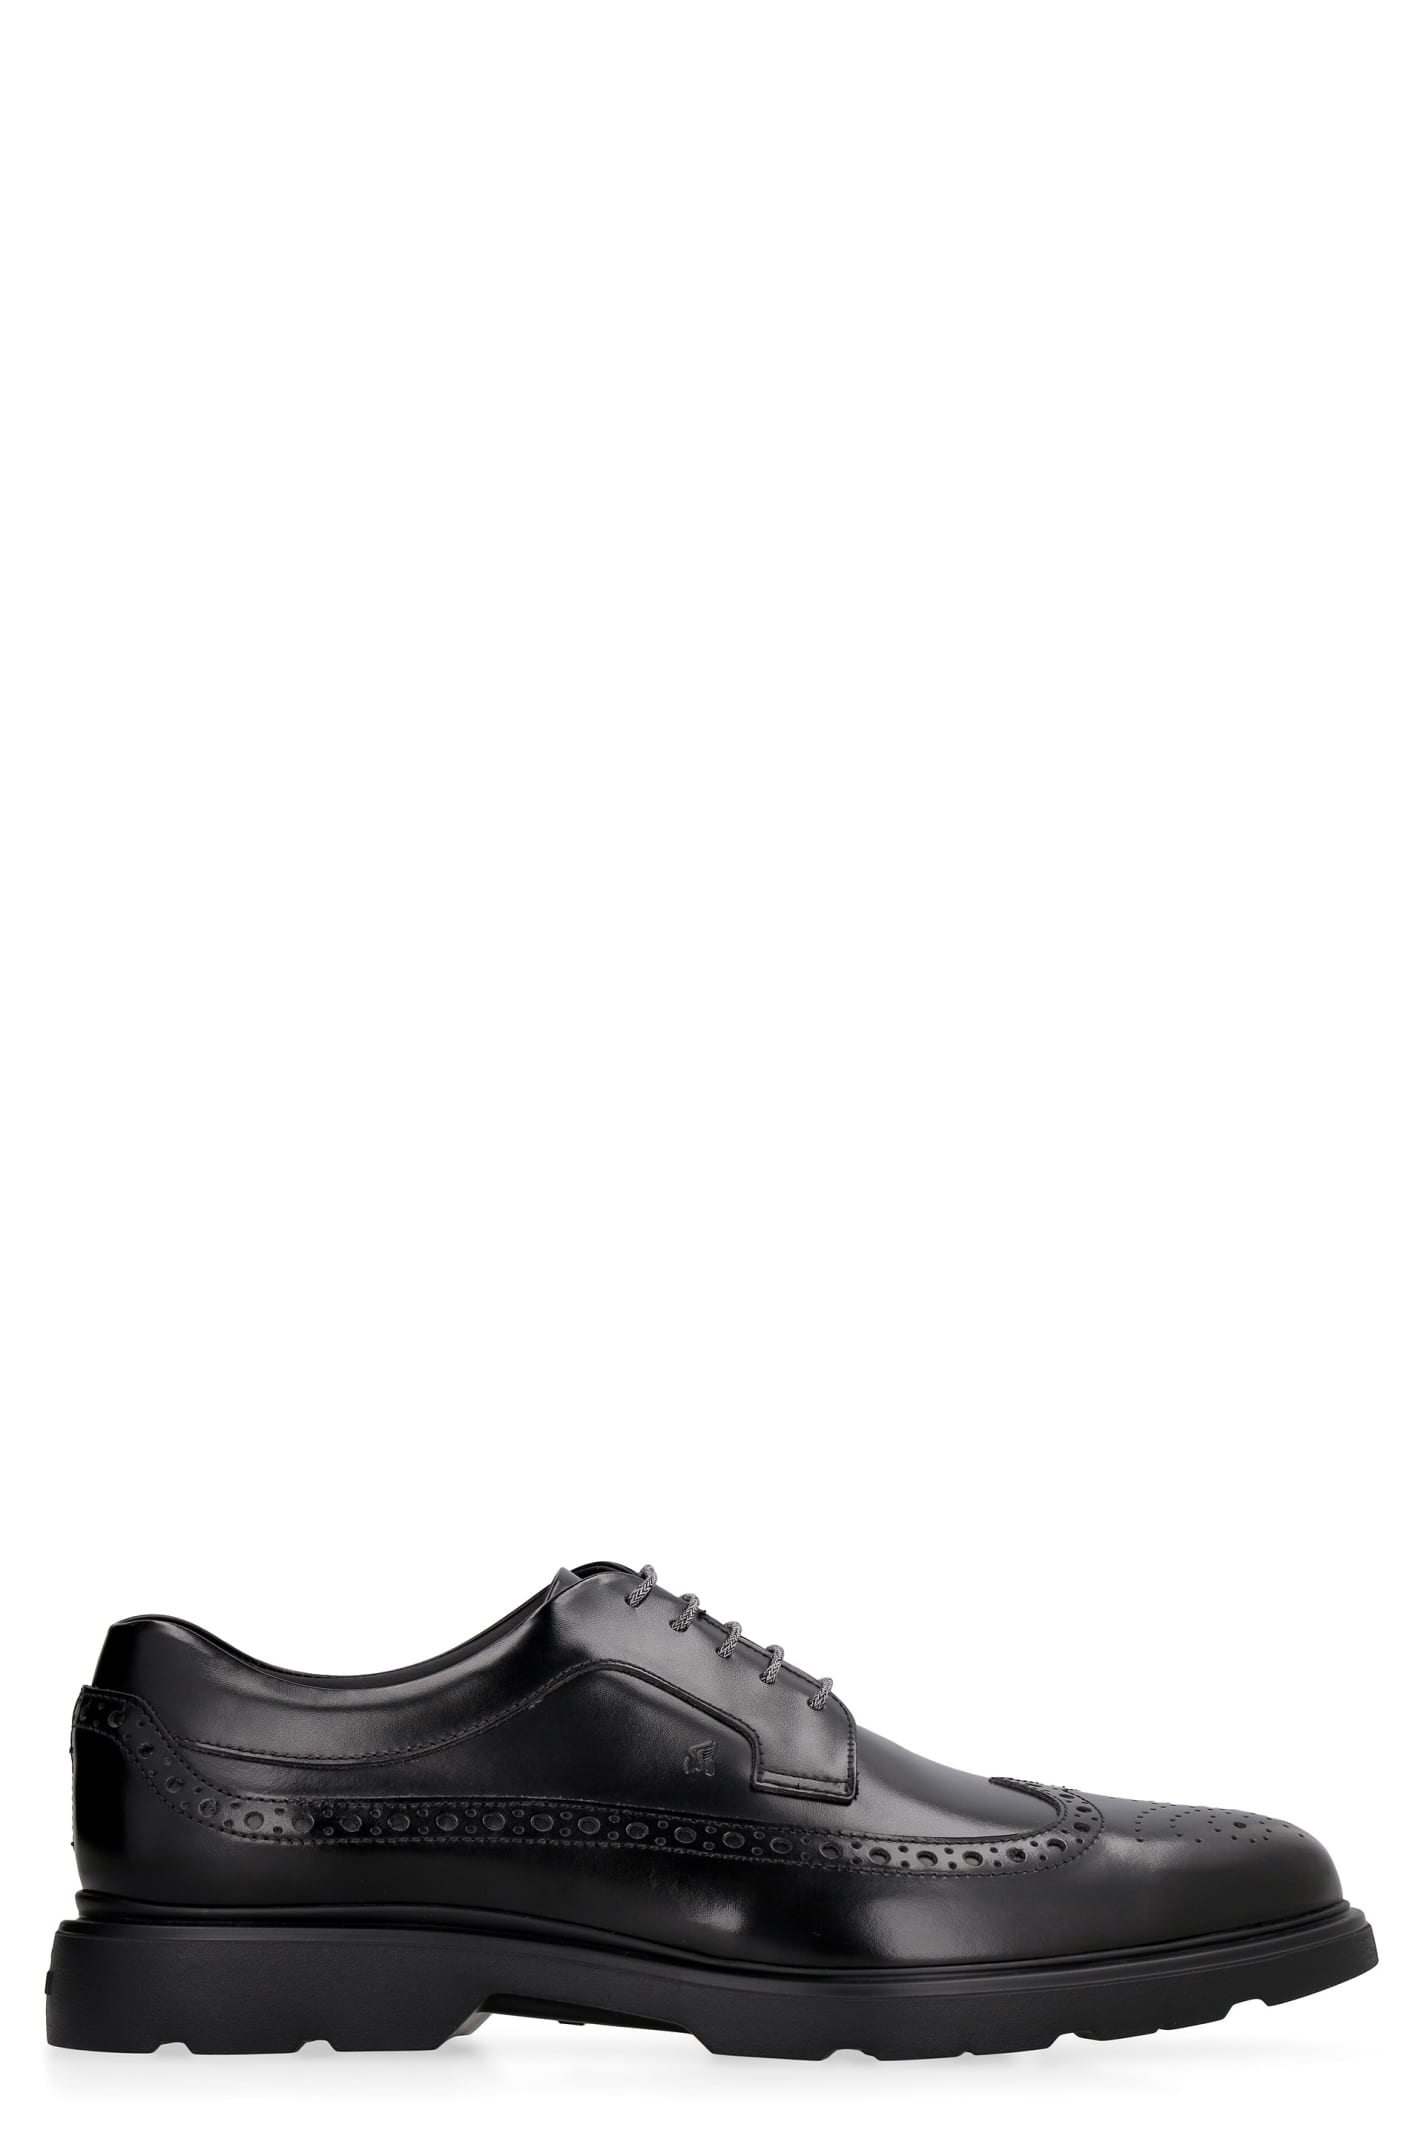 Hogan H393 LEATHER BROGUES LACE-UP SHOES